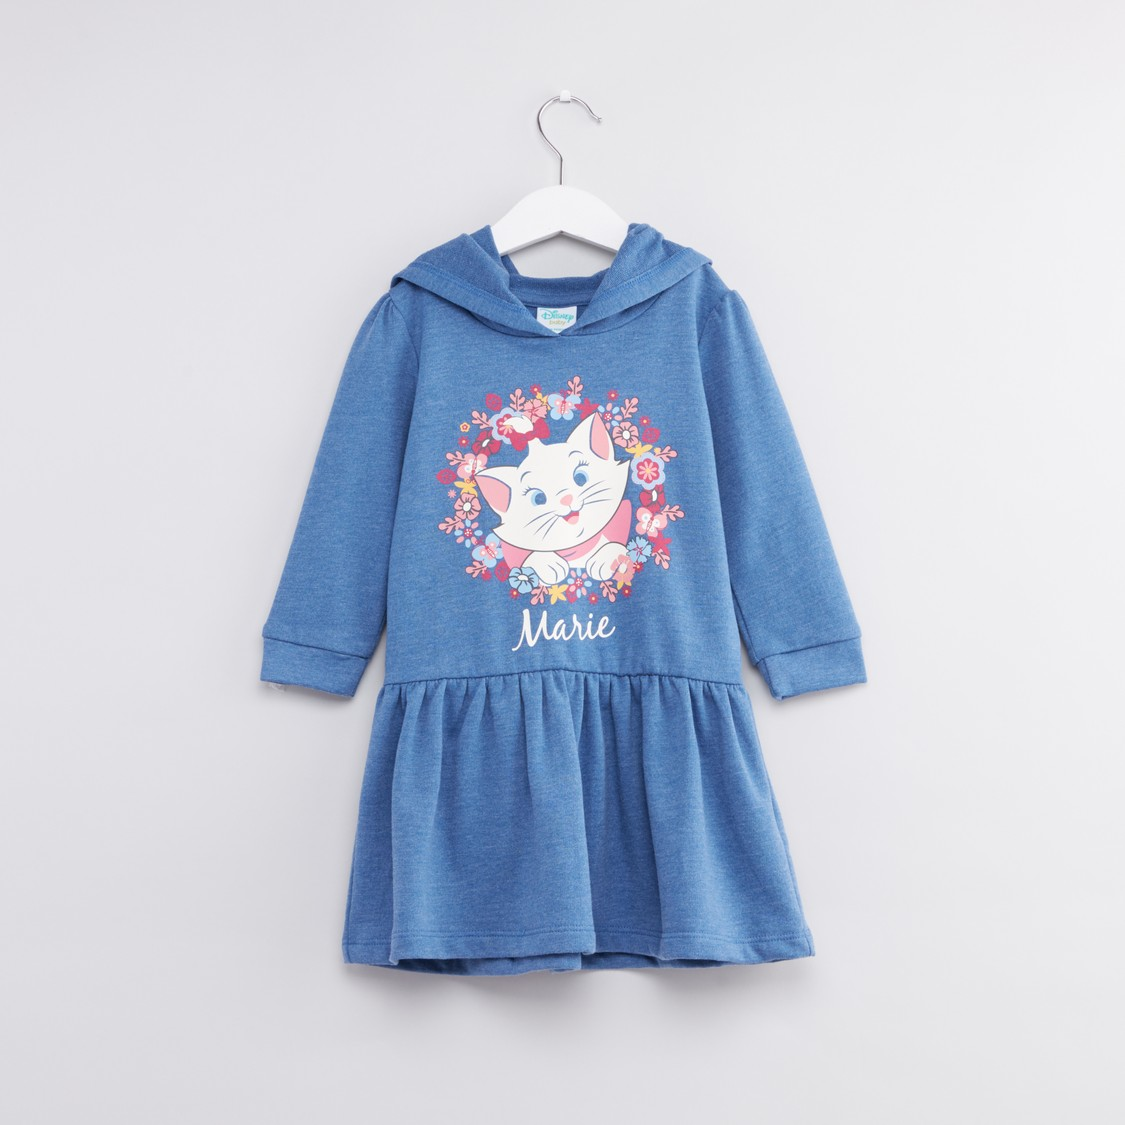 Marie the Cat Printed Dress with Long Sleeves and Hood